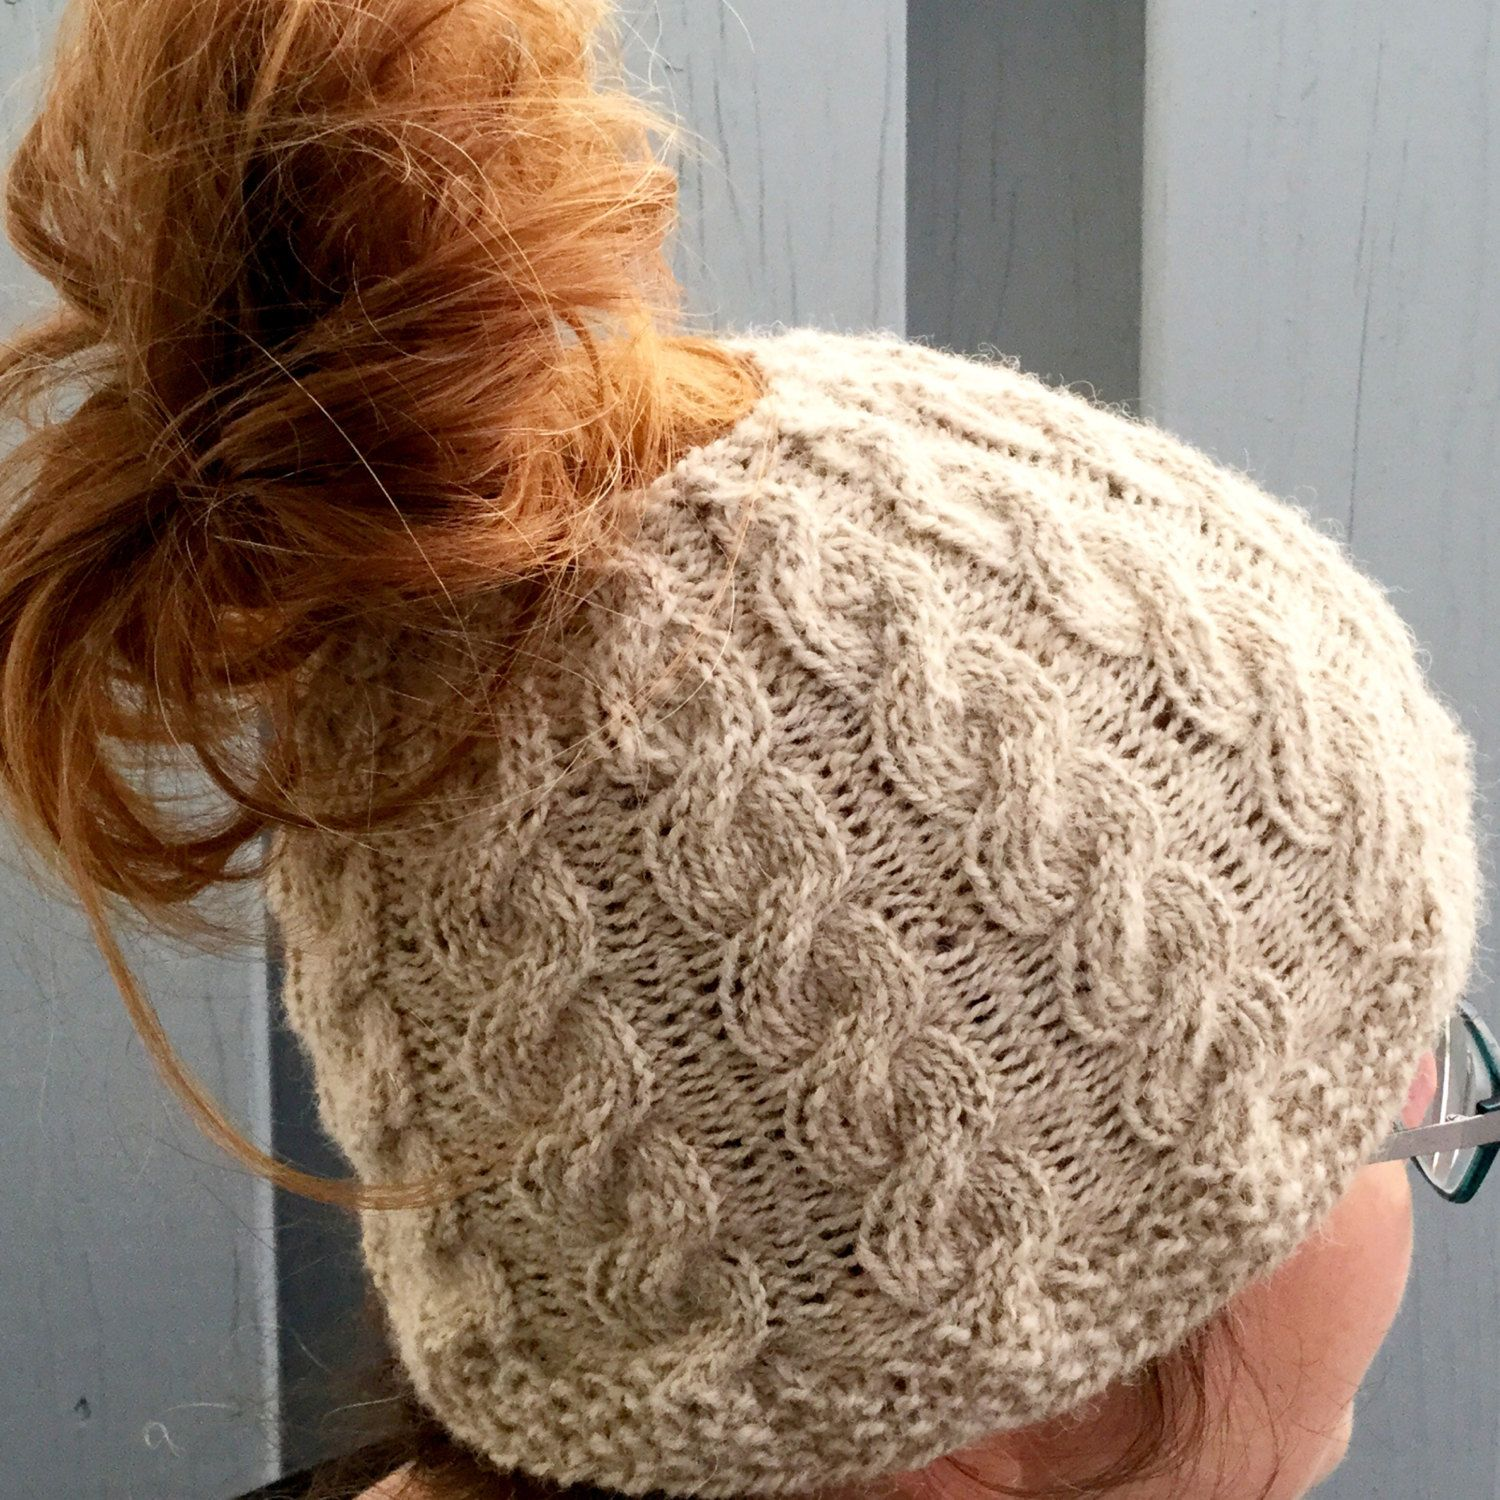 The Charlotte Cable Beanie was designed as a fun twist on the ...